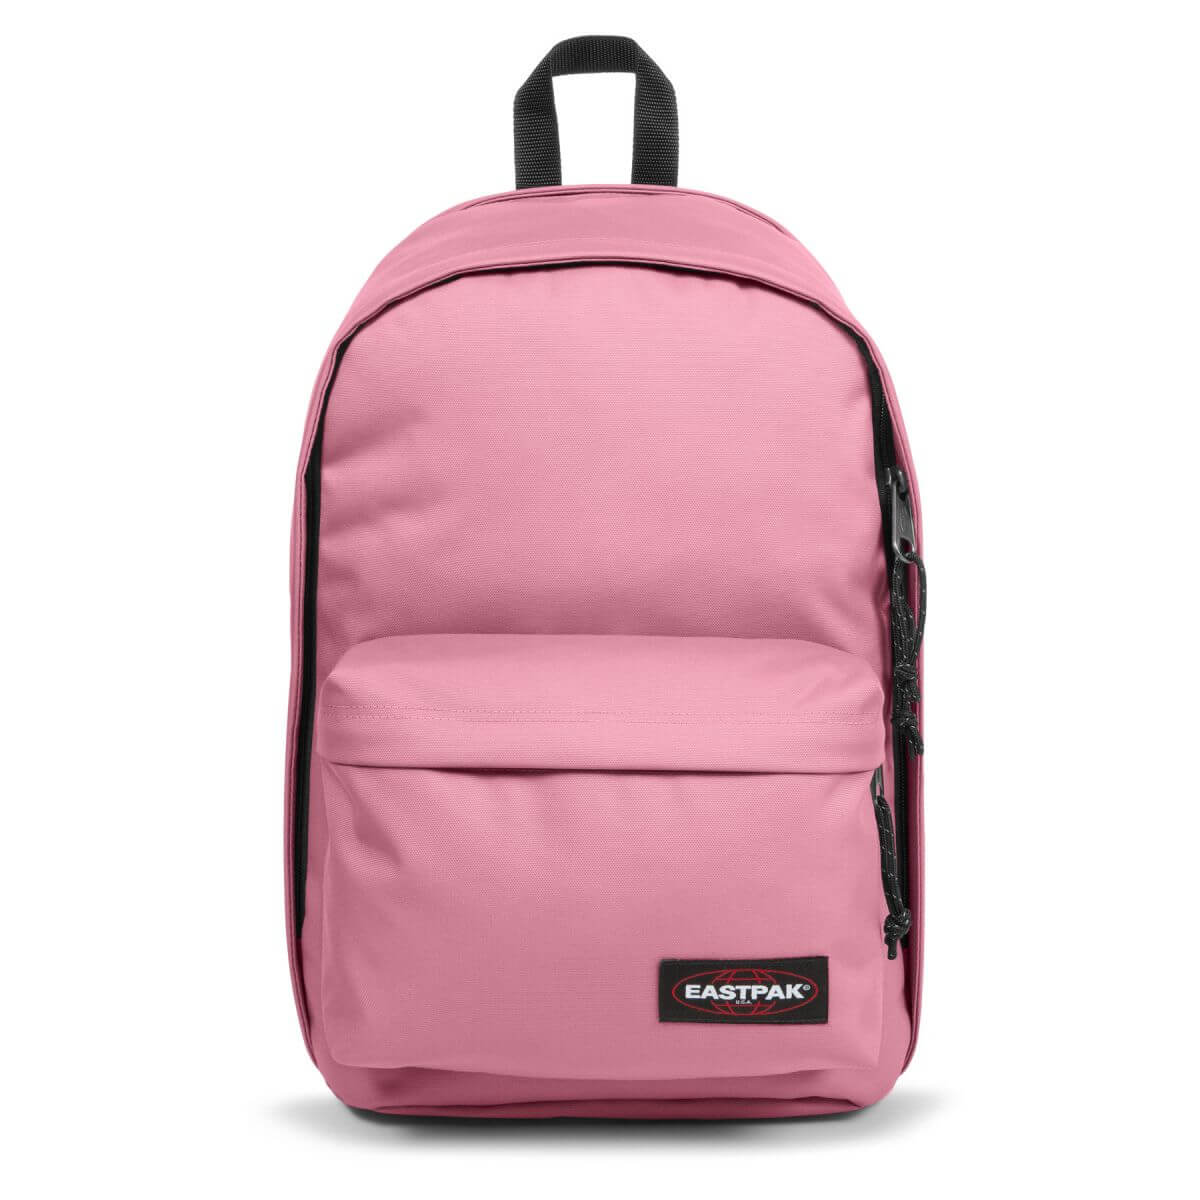 Eastpak Back to Work Crystal Pink